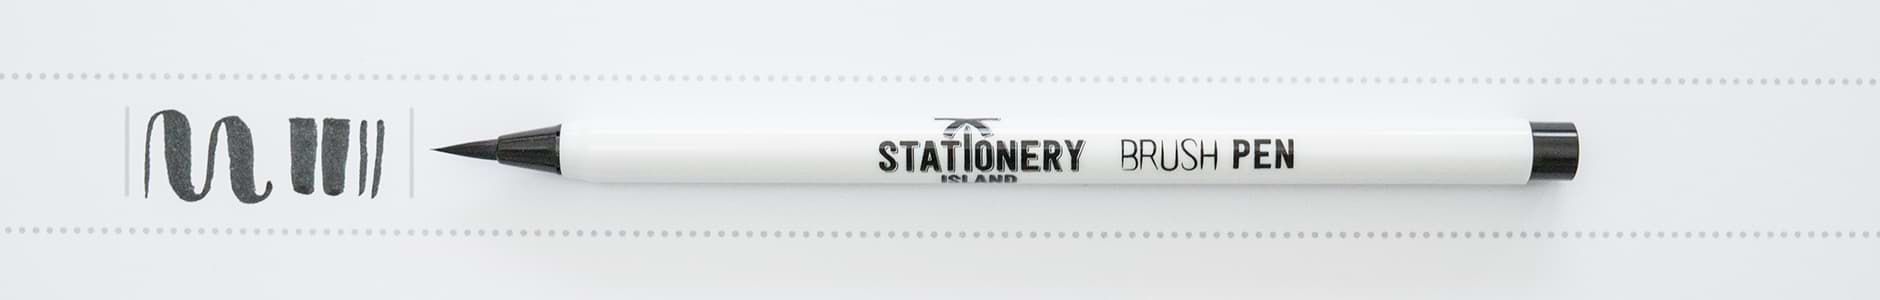 Stationery Island Brush Pen schwarz